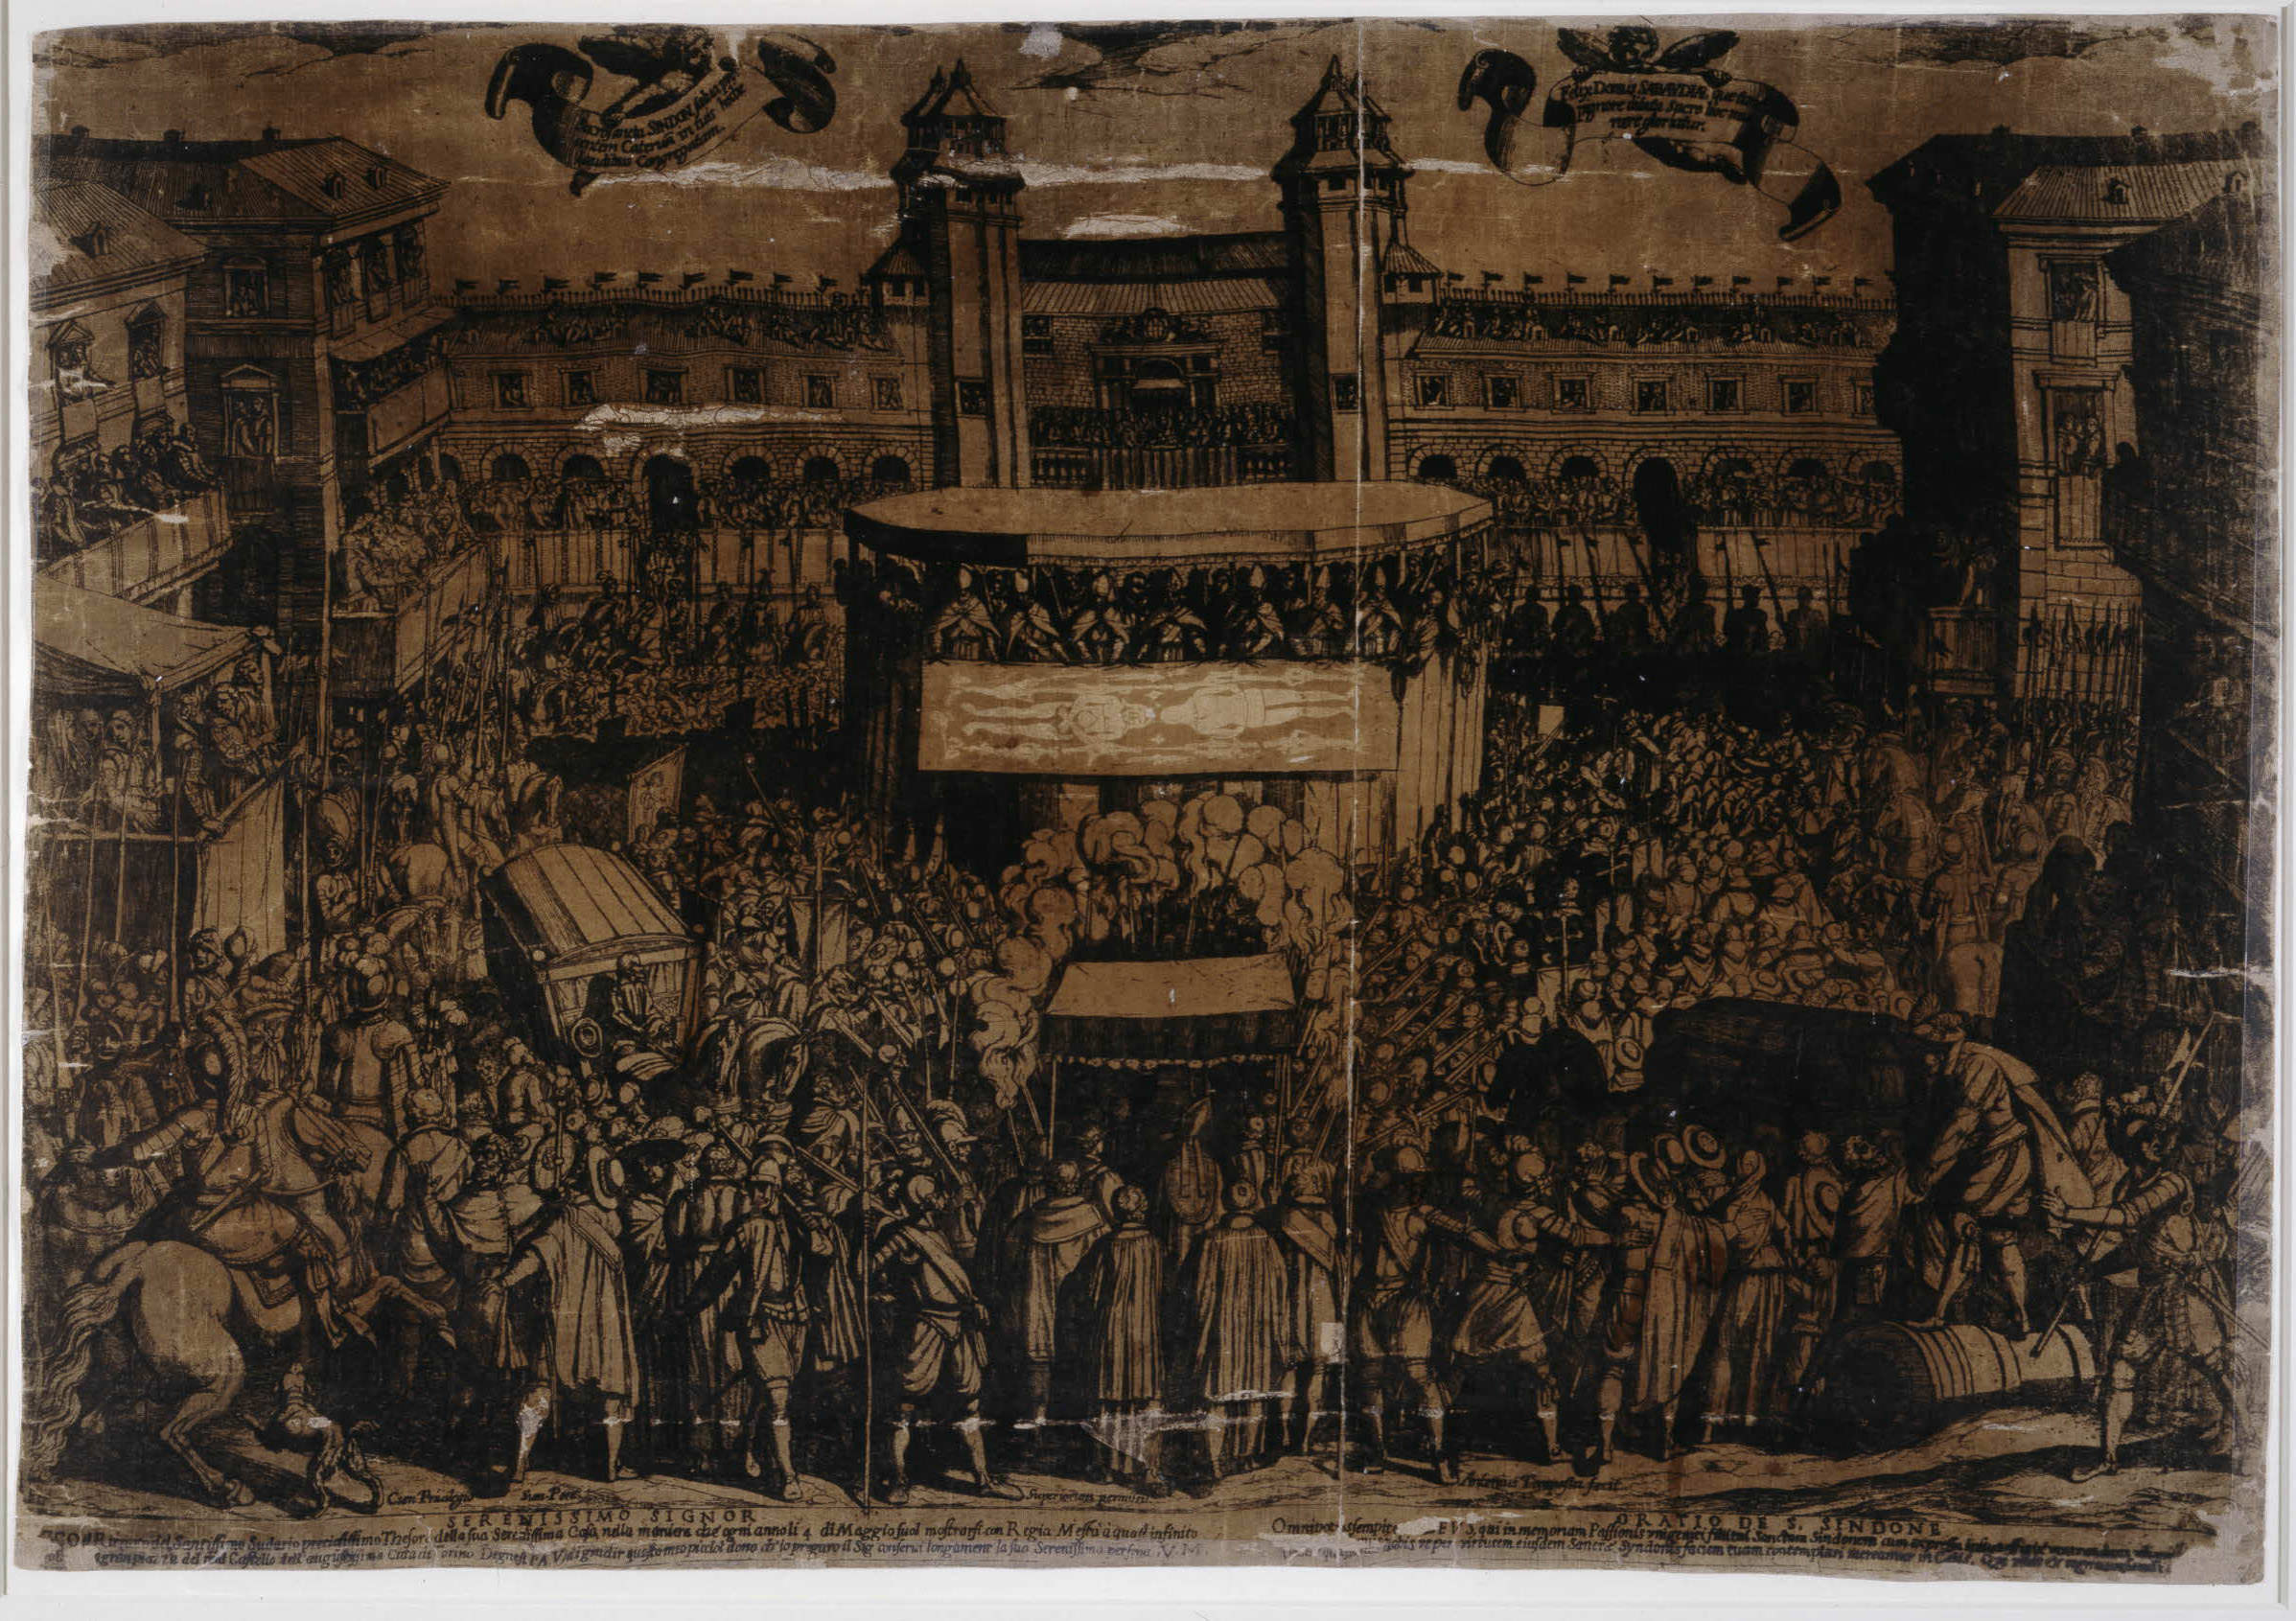 Fig. 2 Antonio Tempesta, The annual display of the Holy Shroud in Turin on 4 May. After 1593, etching and woodcut printed on silk. 426 x 620 mm. The British Museum, 1862,0712.502. Photograph © Trustees of the British Museum